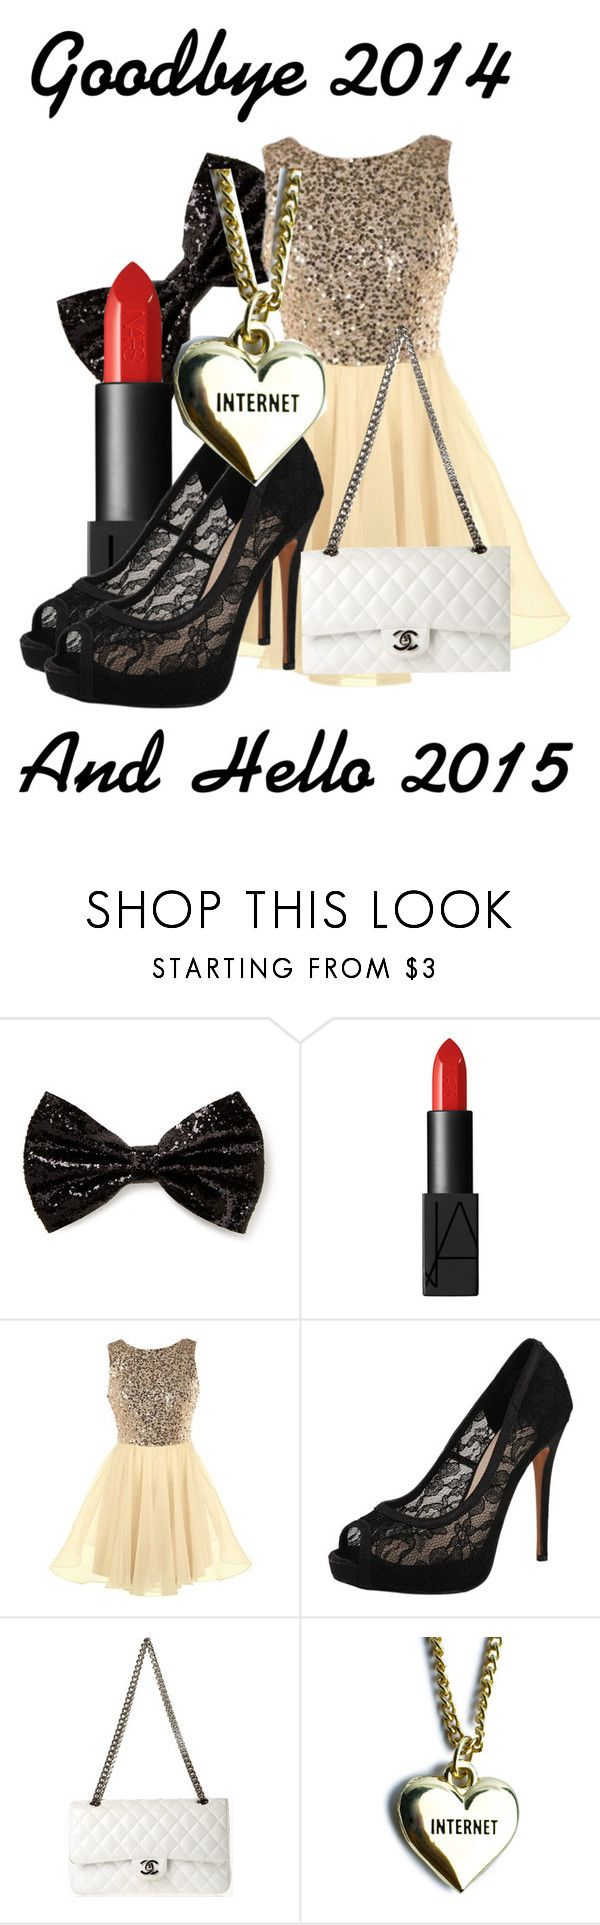 """Goodbye 2014"" by princessmikyrah ❤ liked on Polyvore featuring Forever 21, NARS Cosmetics, Vince Camuto, Chanel and Lazy Oaf"